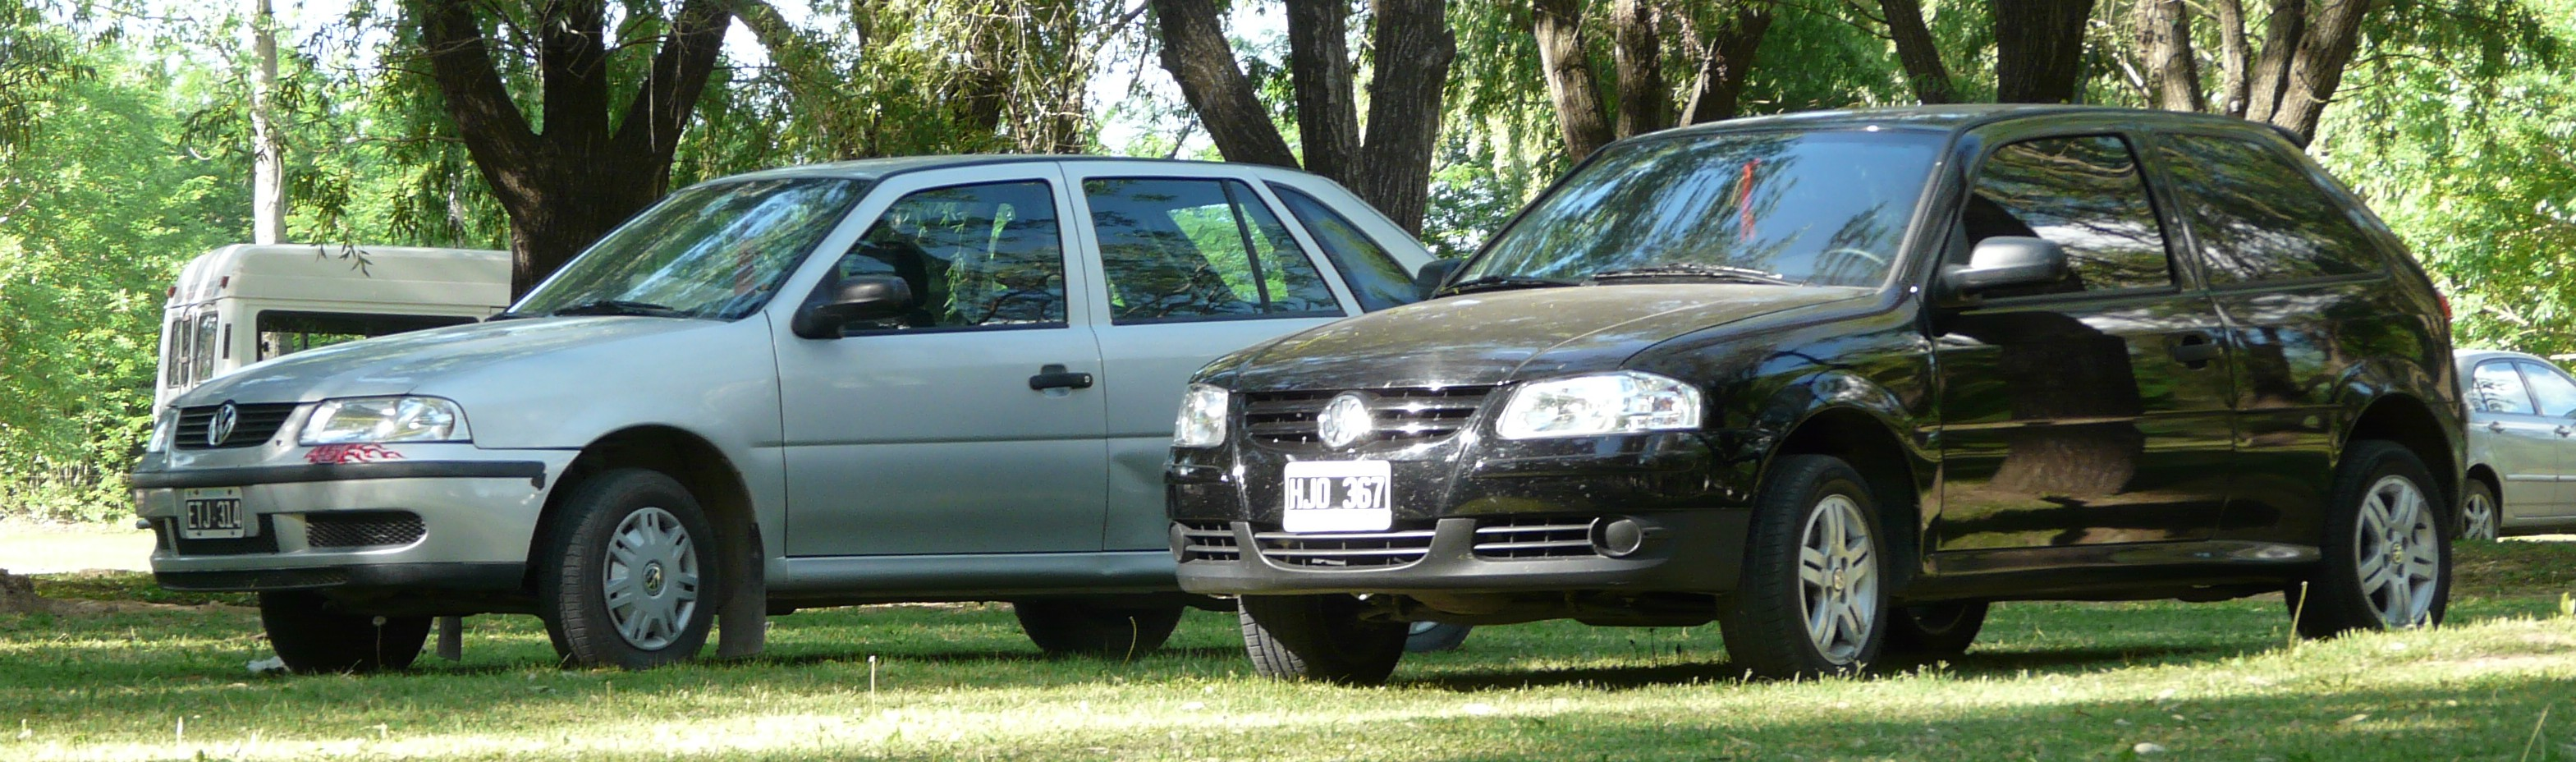 File Vw Gol G3 And G4 Argentina Jpg Wikimedia Commons